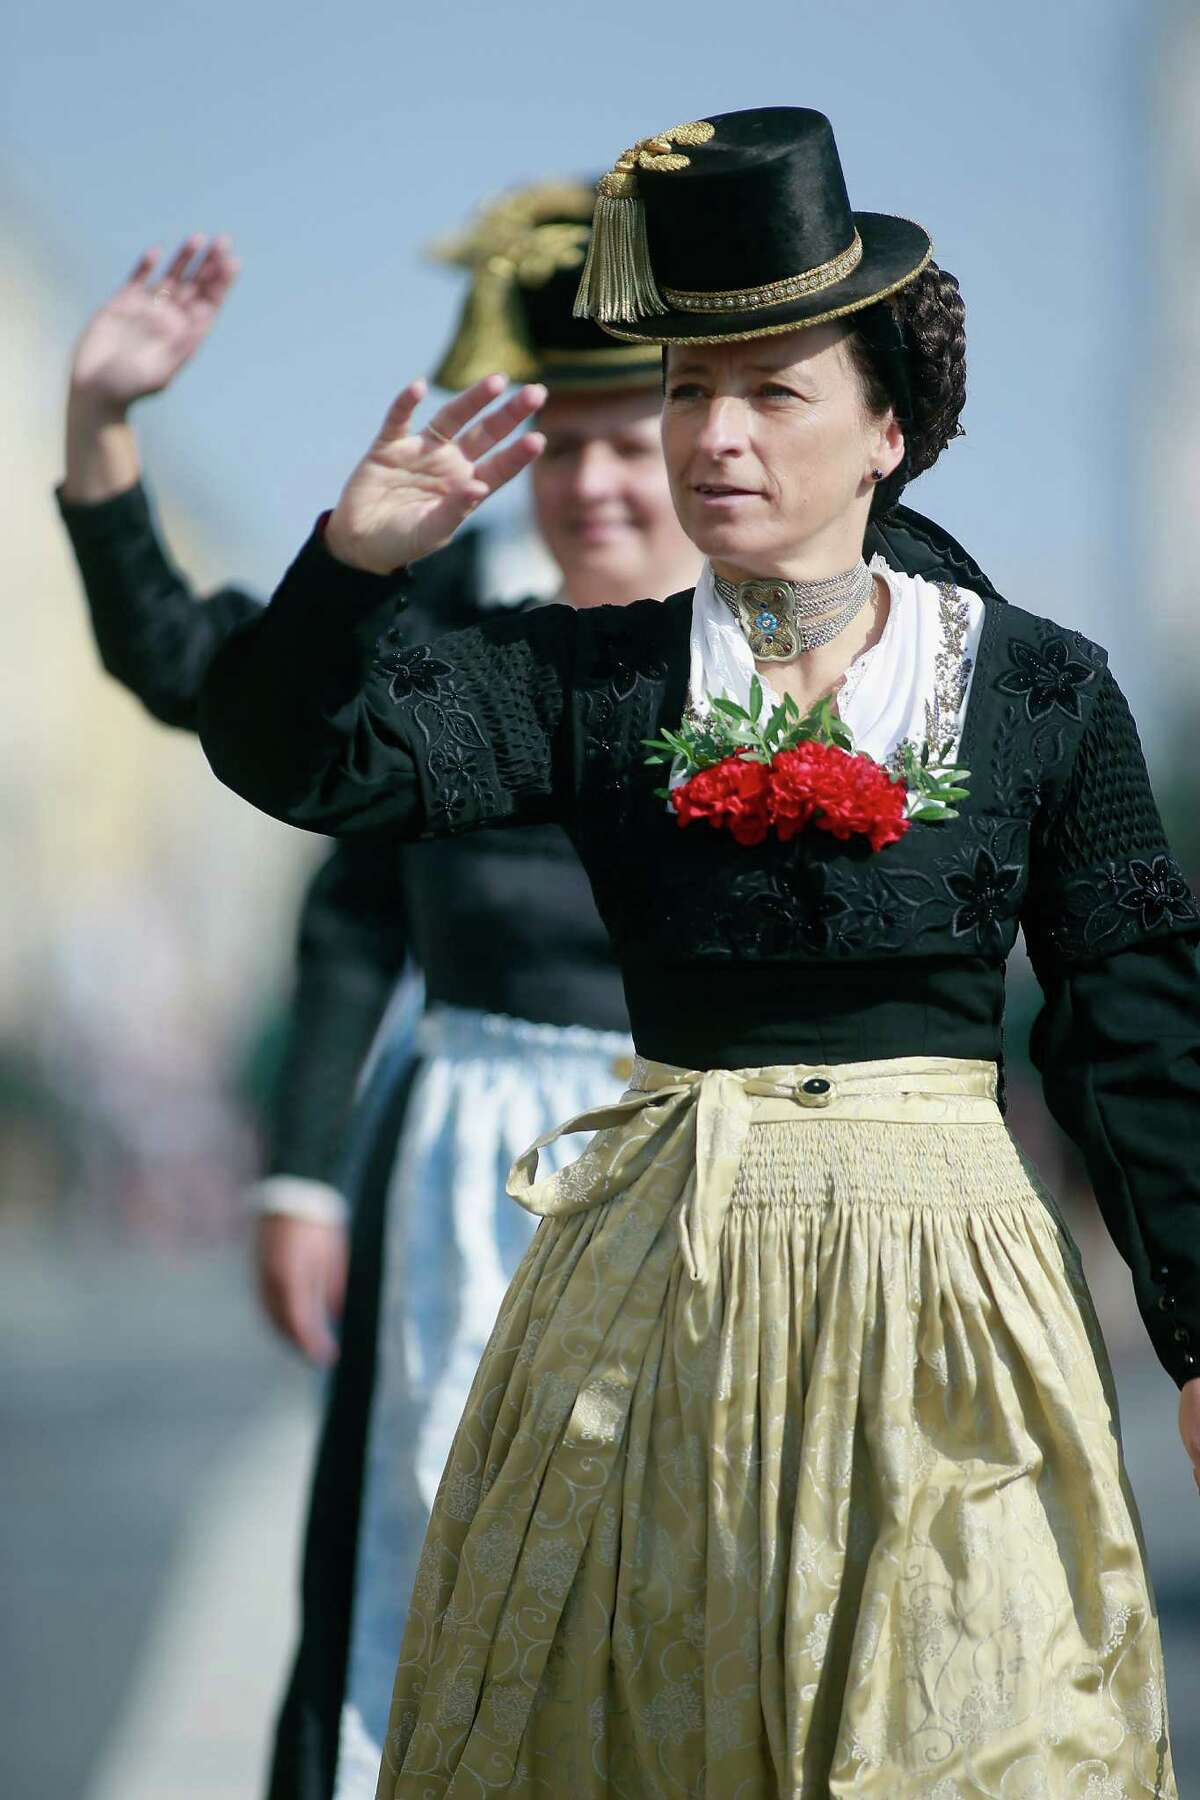 MUNICH, GERMANY - SEPTEMBER 23: Traditional Bavarian dressed women participate in the riflemen's parade during day 2 of the Oktoberfest beer festival on September 22, 2012 in Munich, Germany.This year's edition of the world's biggest beer festival Oktoberfest will run until October 7, 2012.